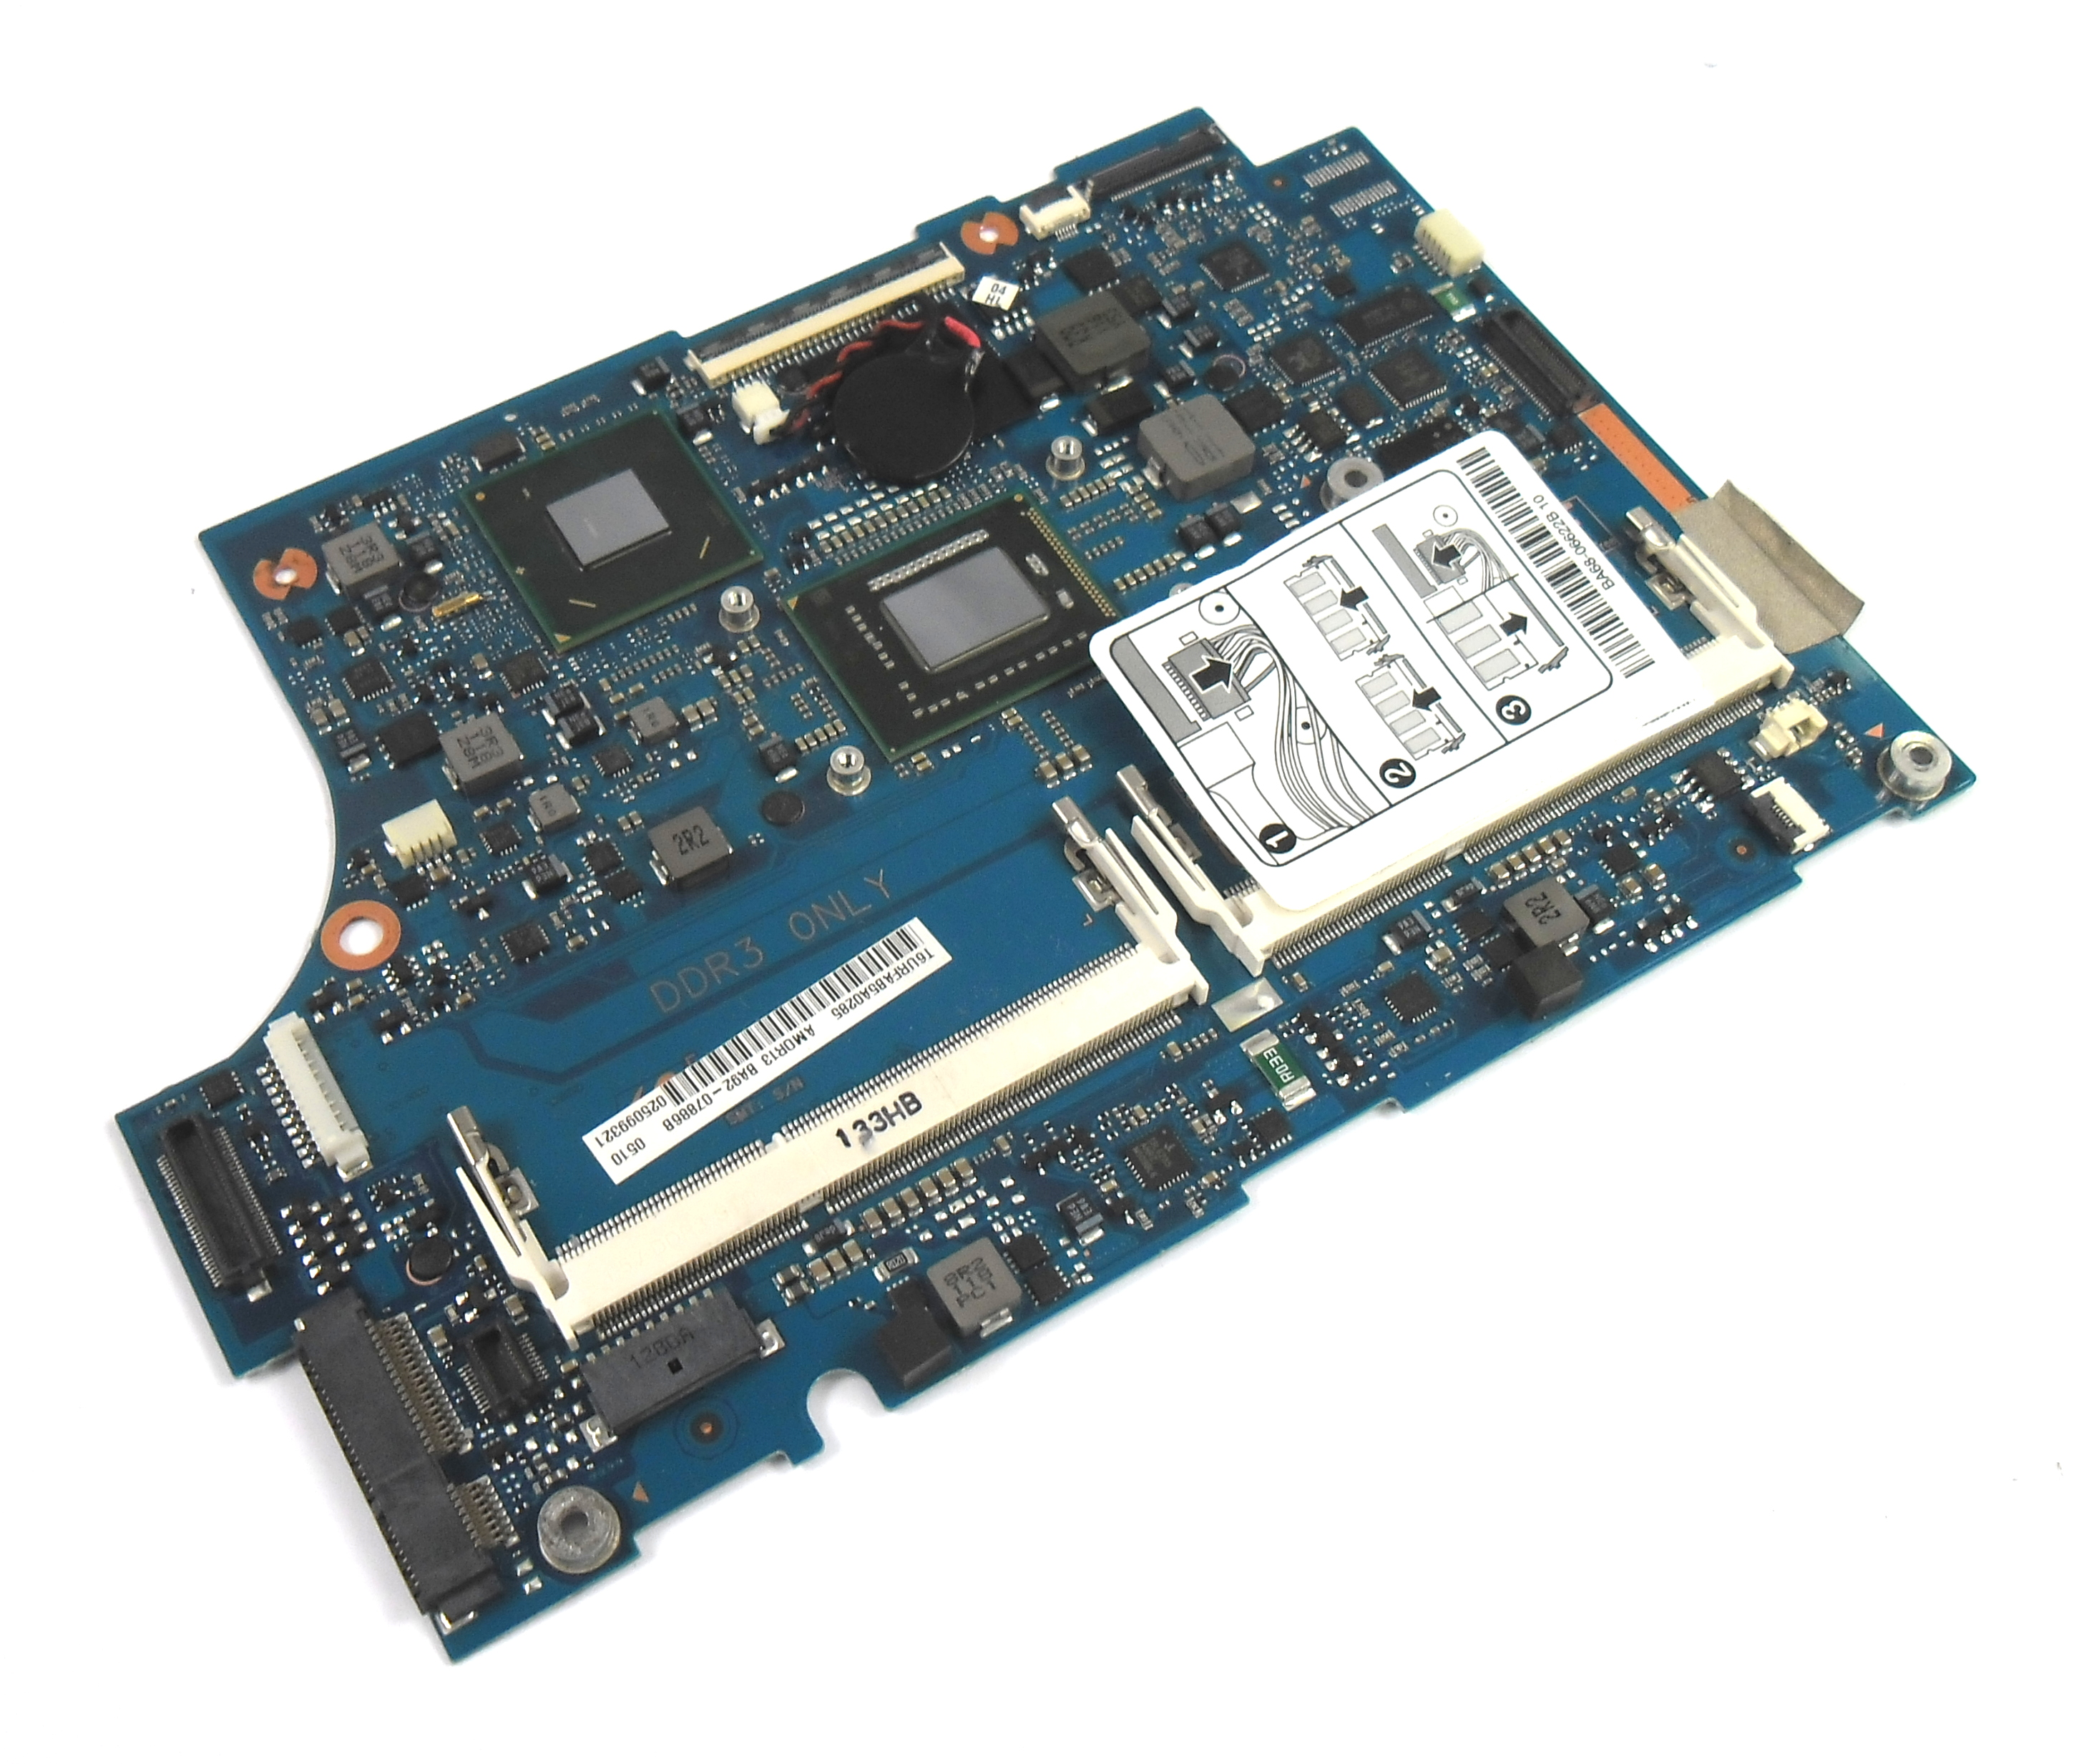 Samsung BA92-07886 900X Laptop Motherboard with Intel Core i5-2537M Processor